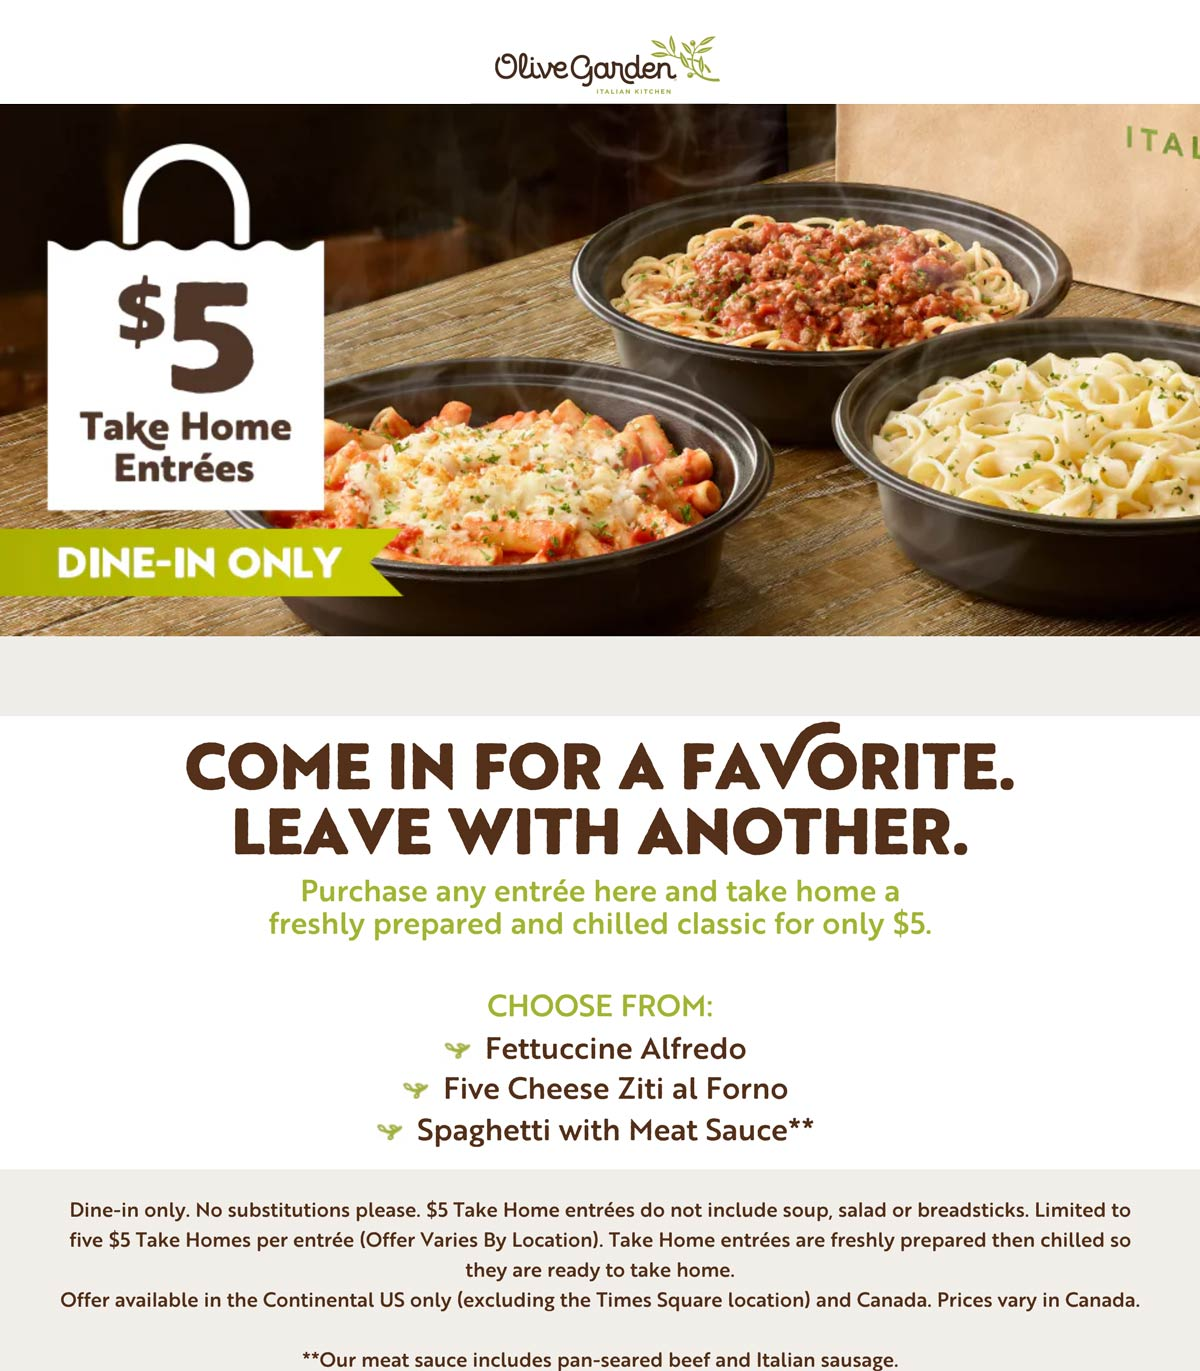 Olive Garden restaurants Coupon  $5 take home entrees with your dine-in meal at Olive Garden #olivegarden